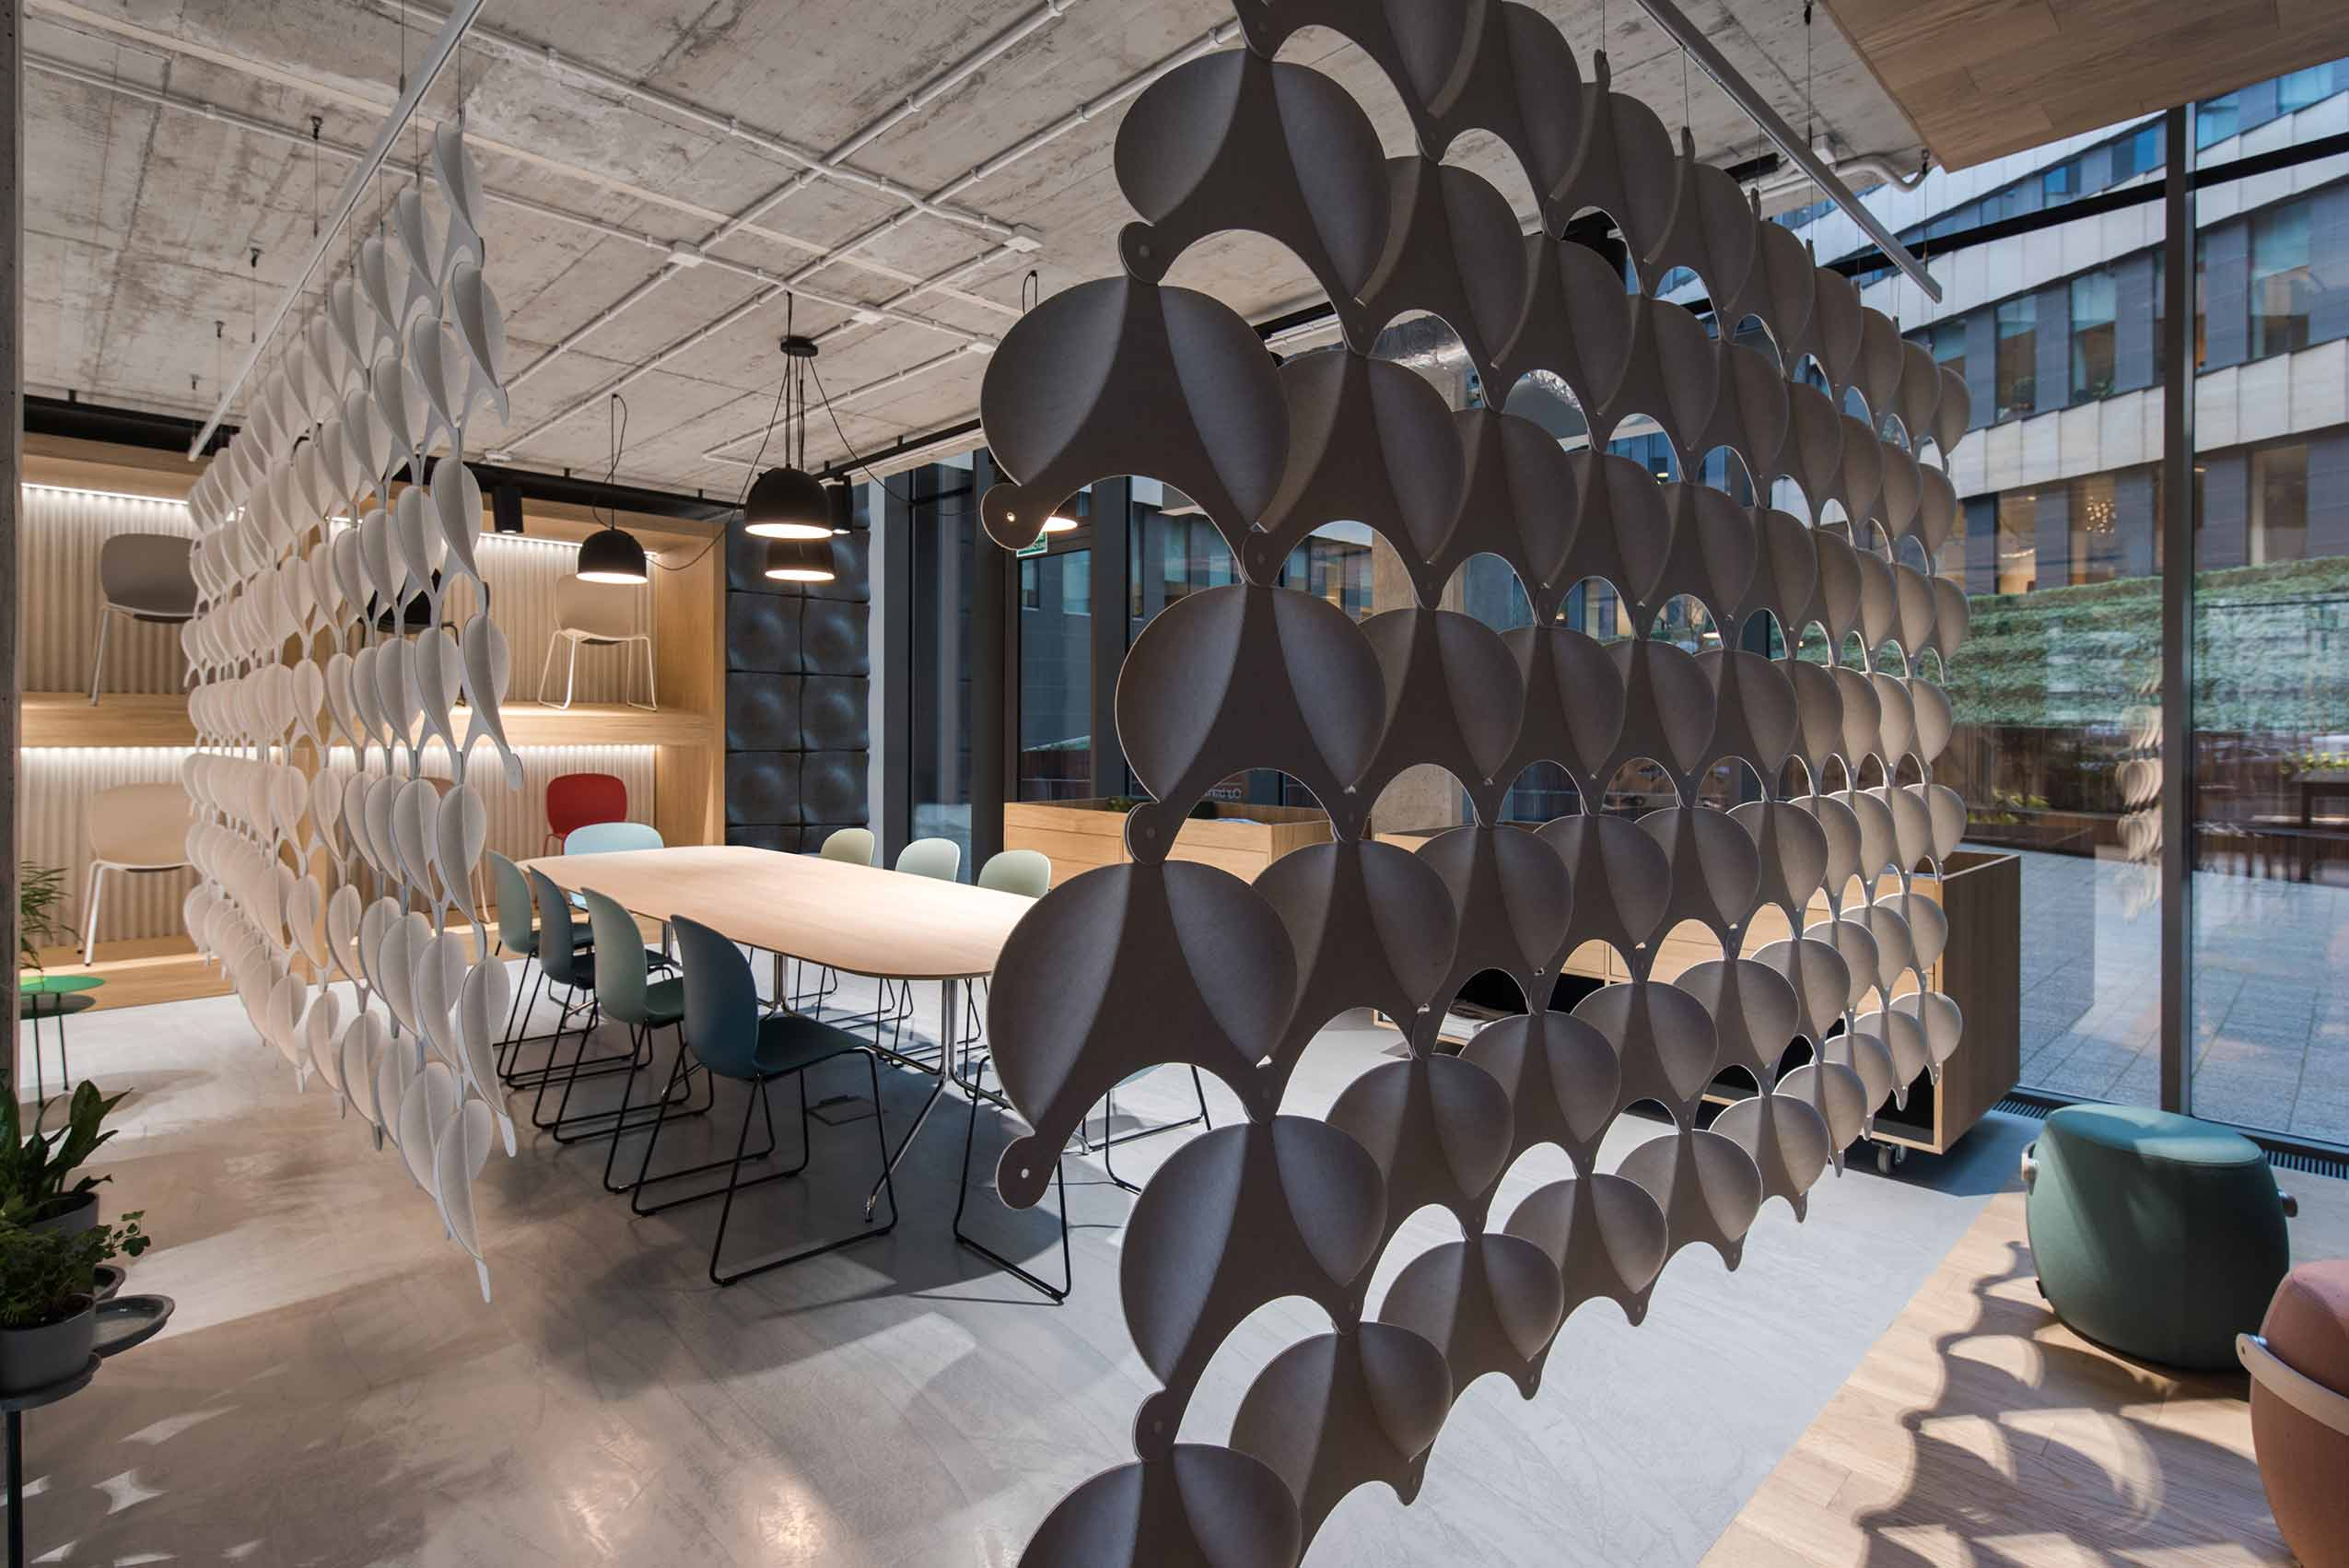 Flokk furniture showroom in poland warsaw scandinavian design led interior architecture offecct acoustic panels white